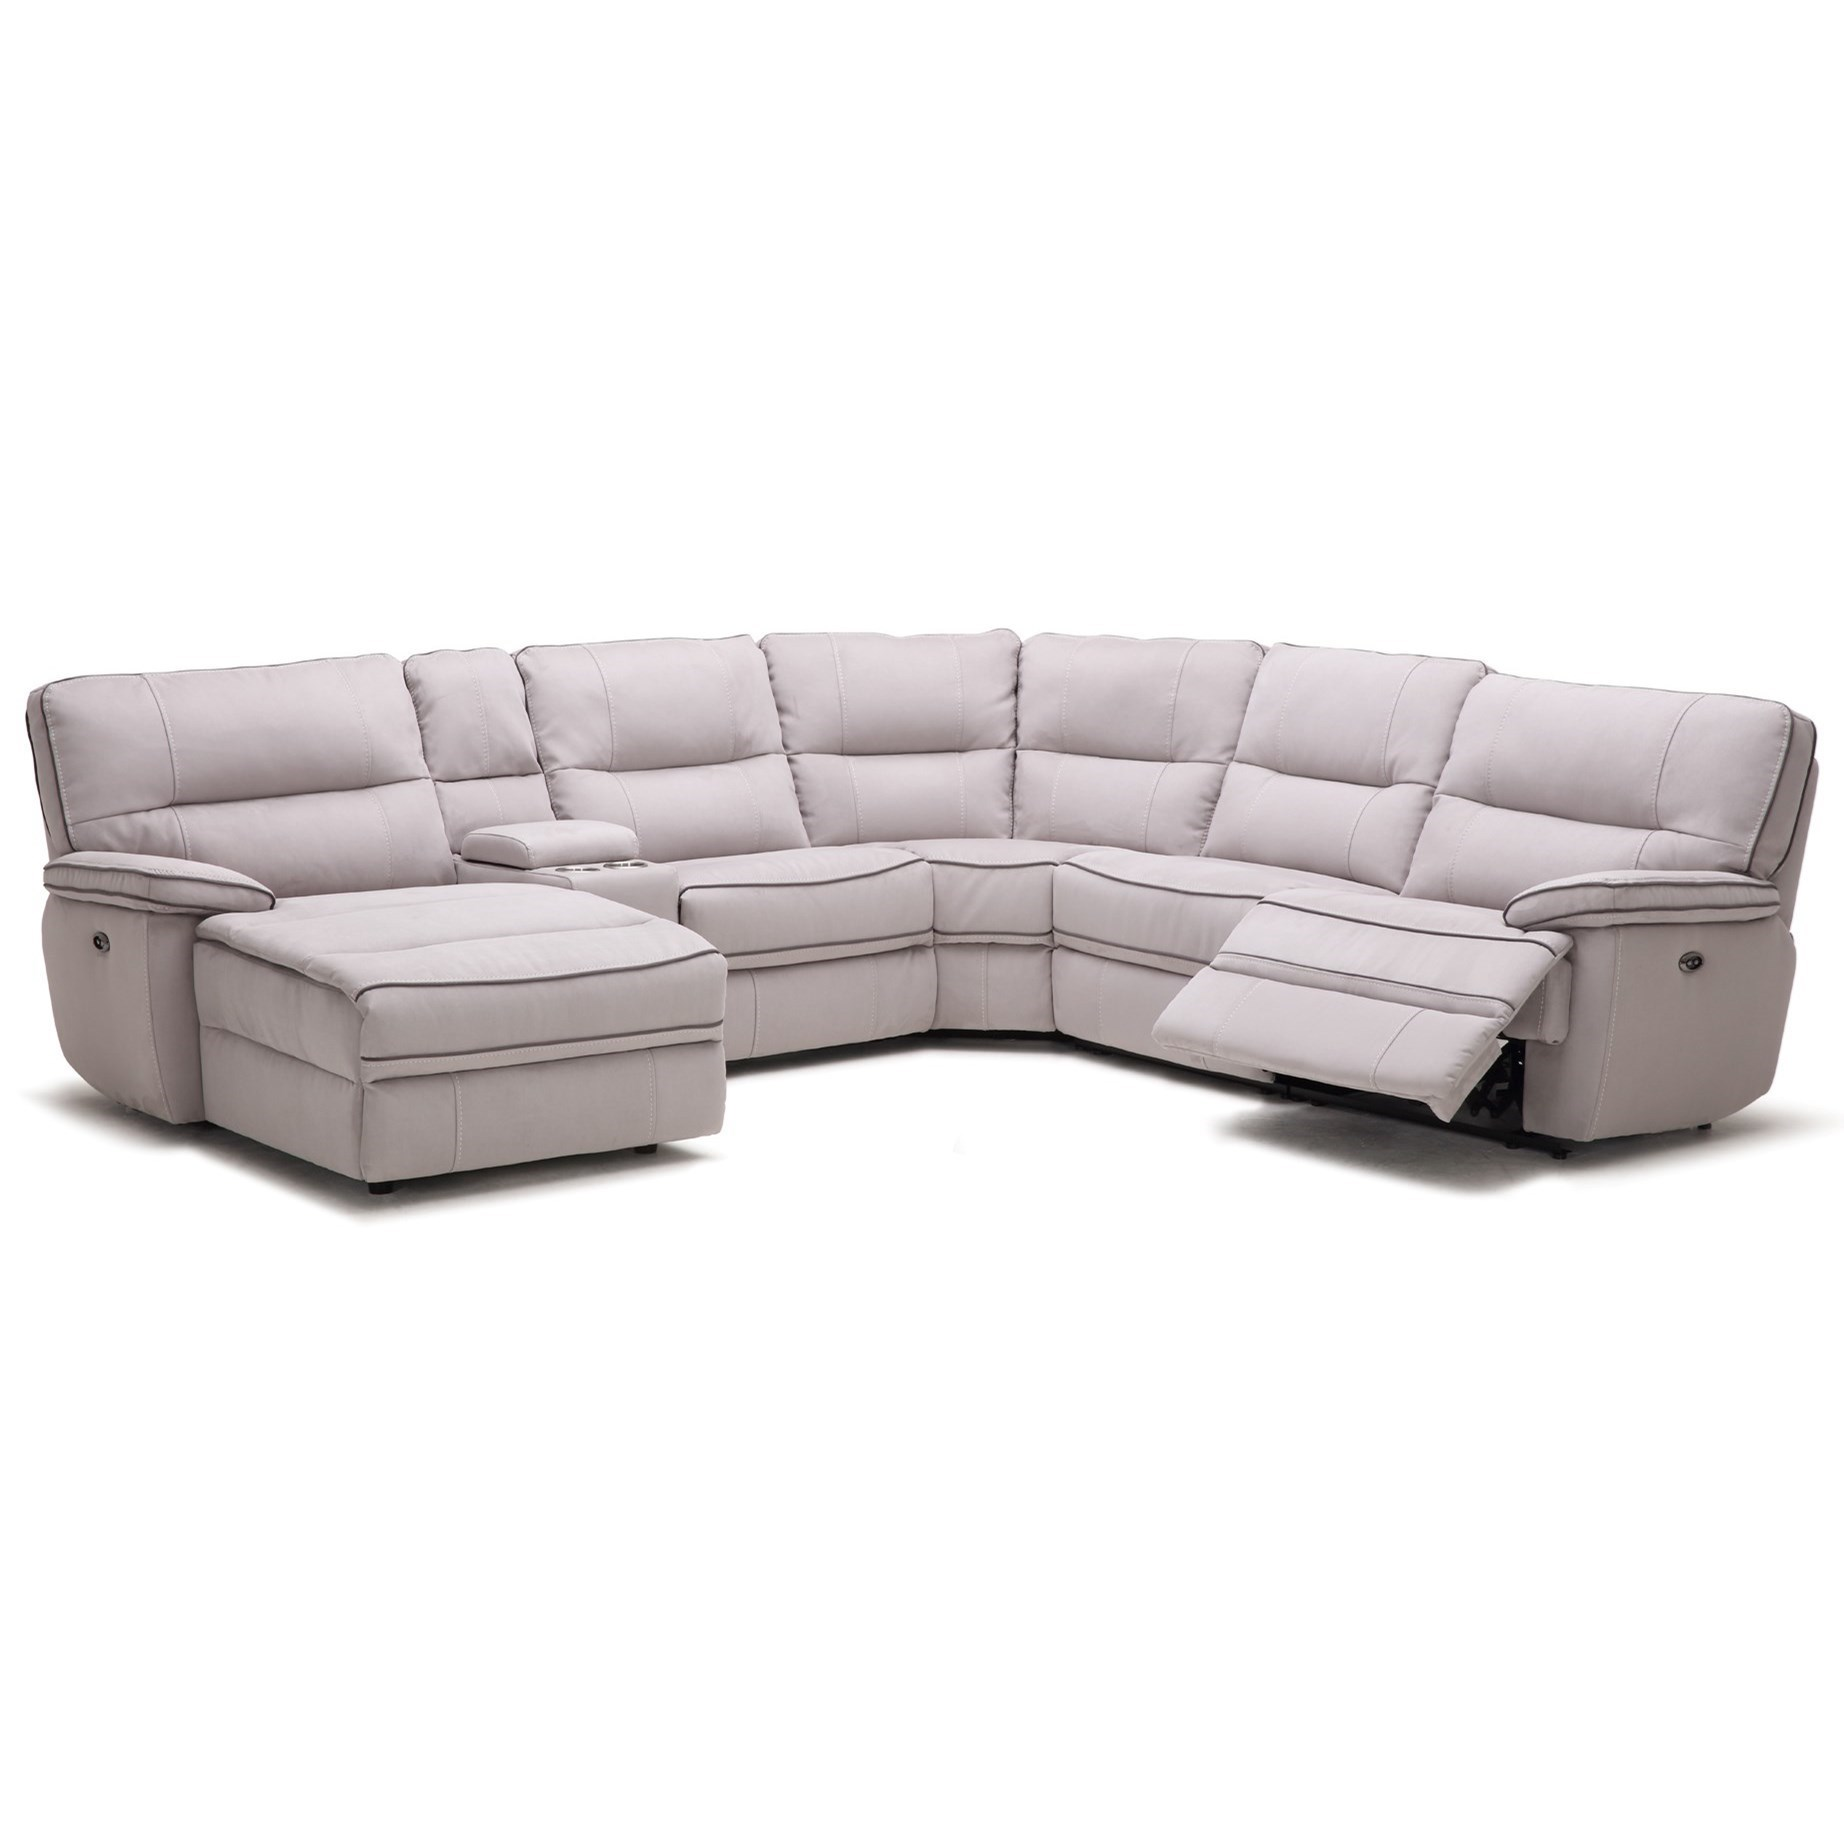 km019 6 pc reclining sectional sofa